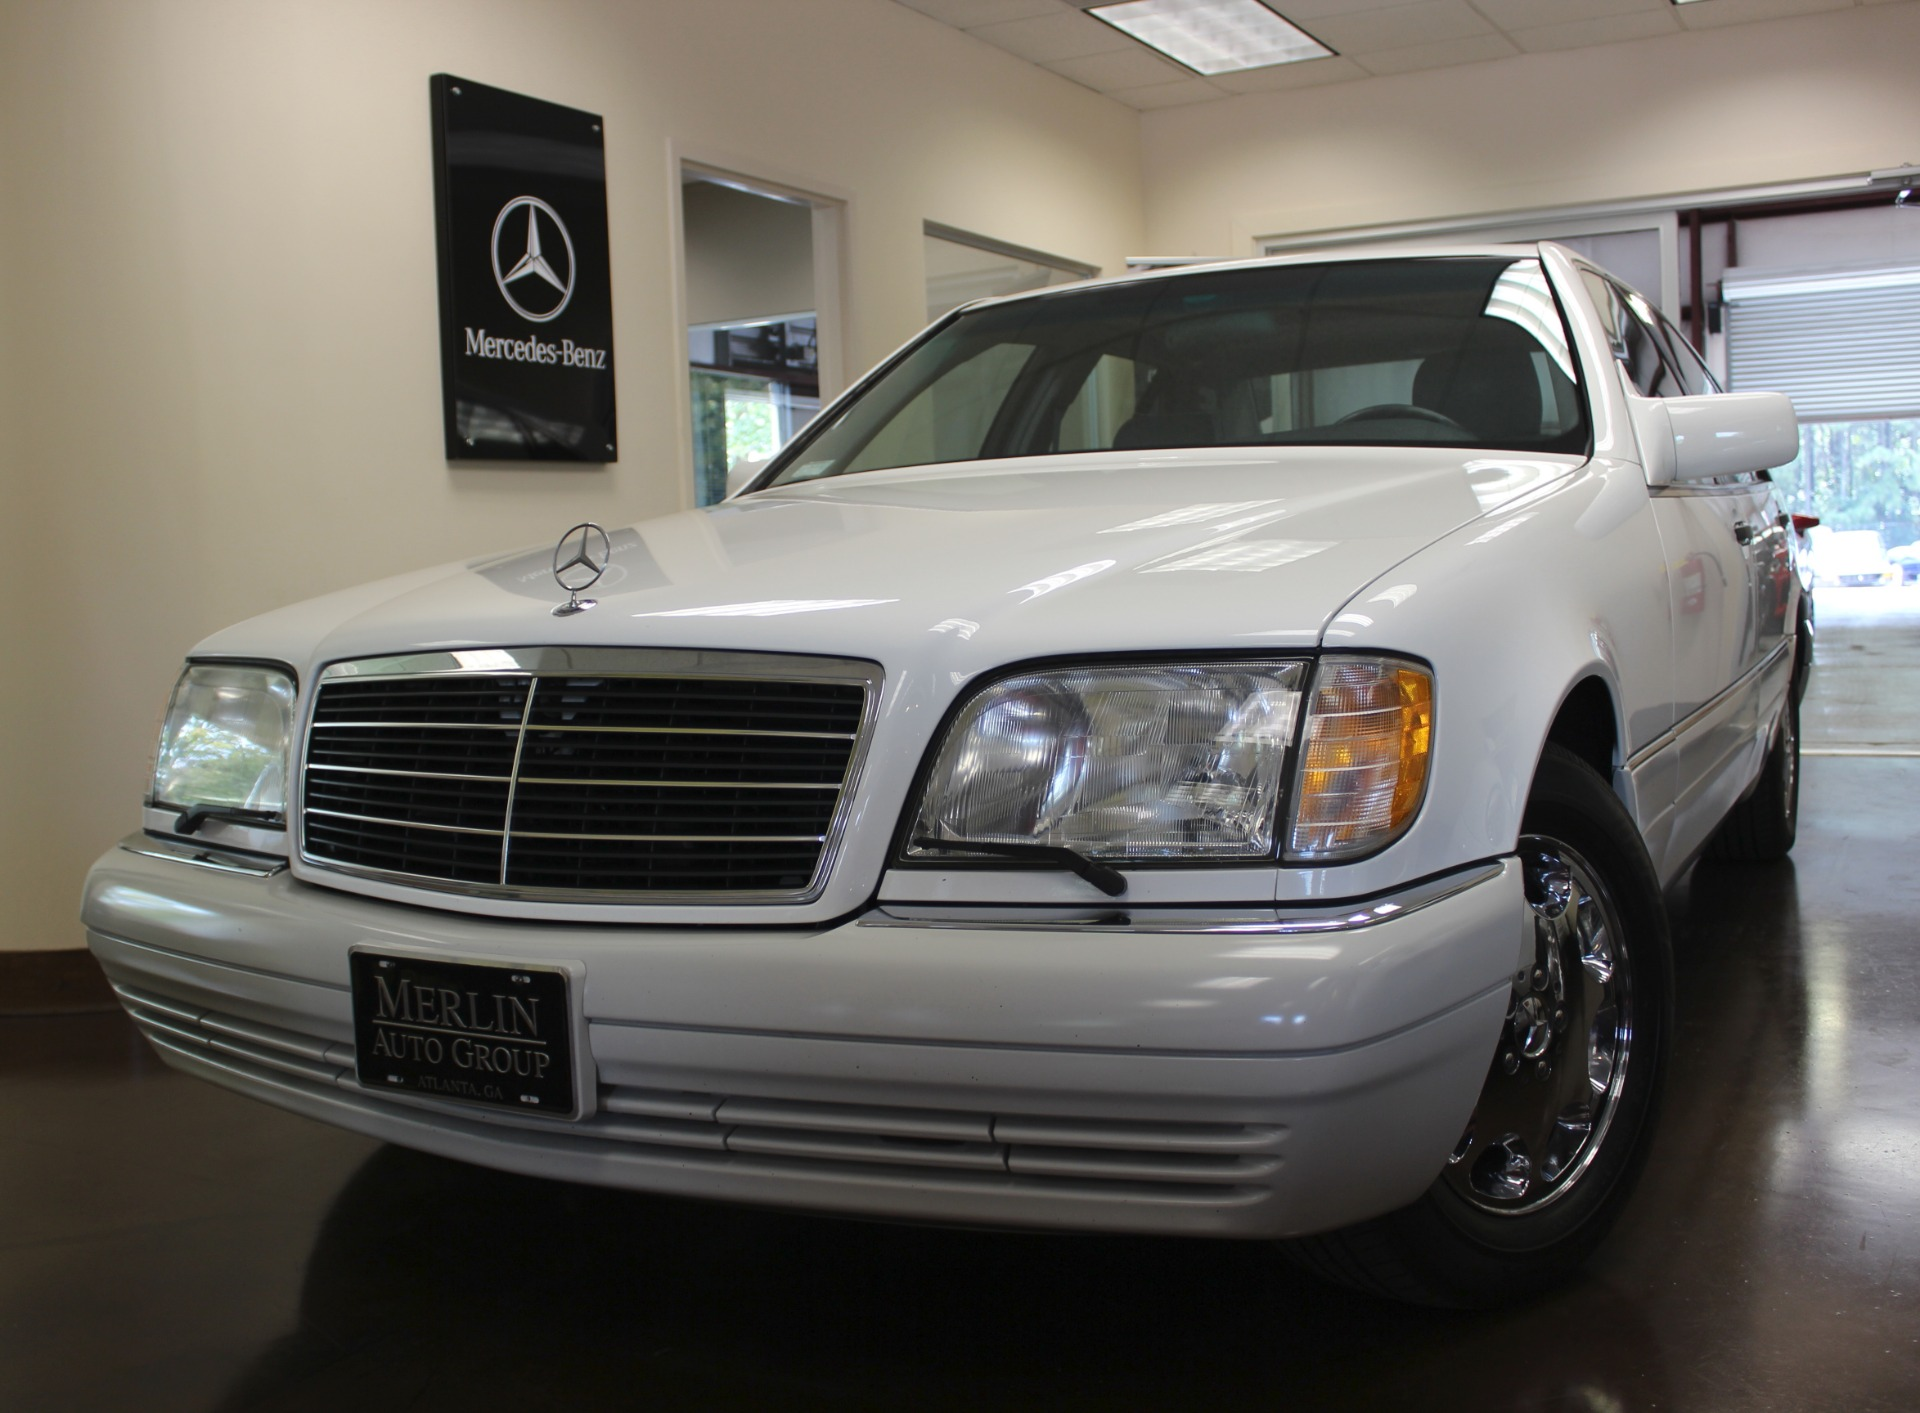 Used 1995 mercedes benz s class white sedan v8 a for Used mercedes benz for sale in usa